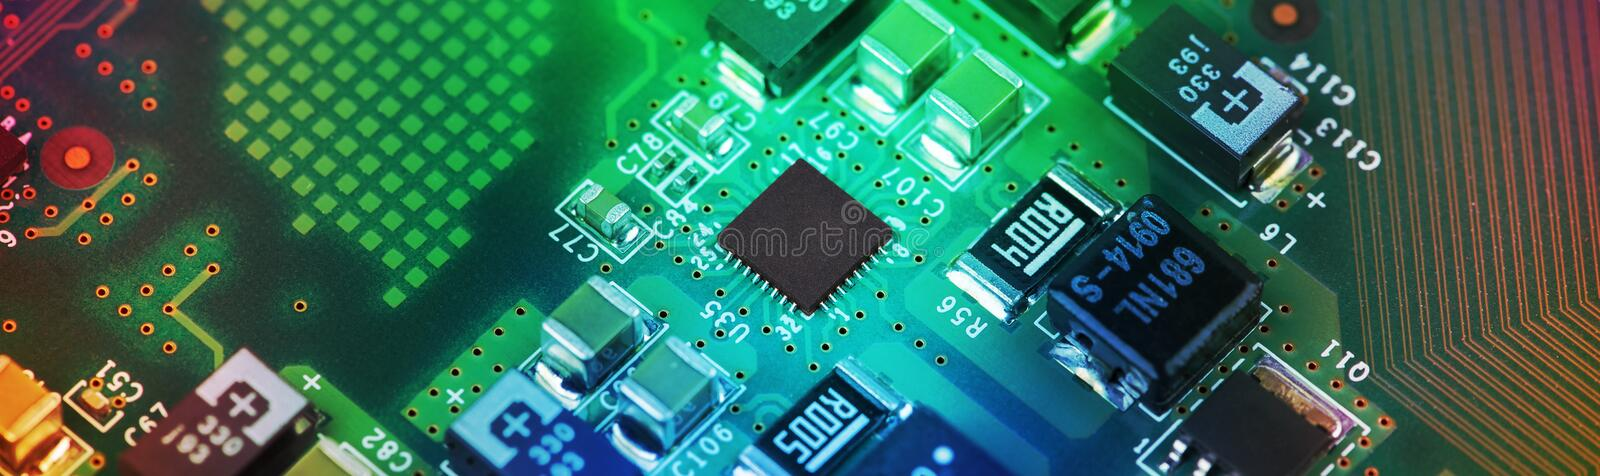 High Tech Circuit Board close up, macro. concept of information technology. Printed circuit board with components. close up, macro. concept of information